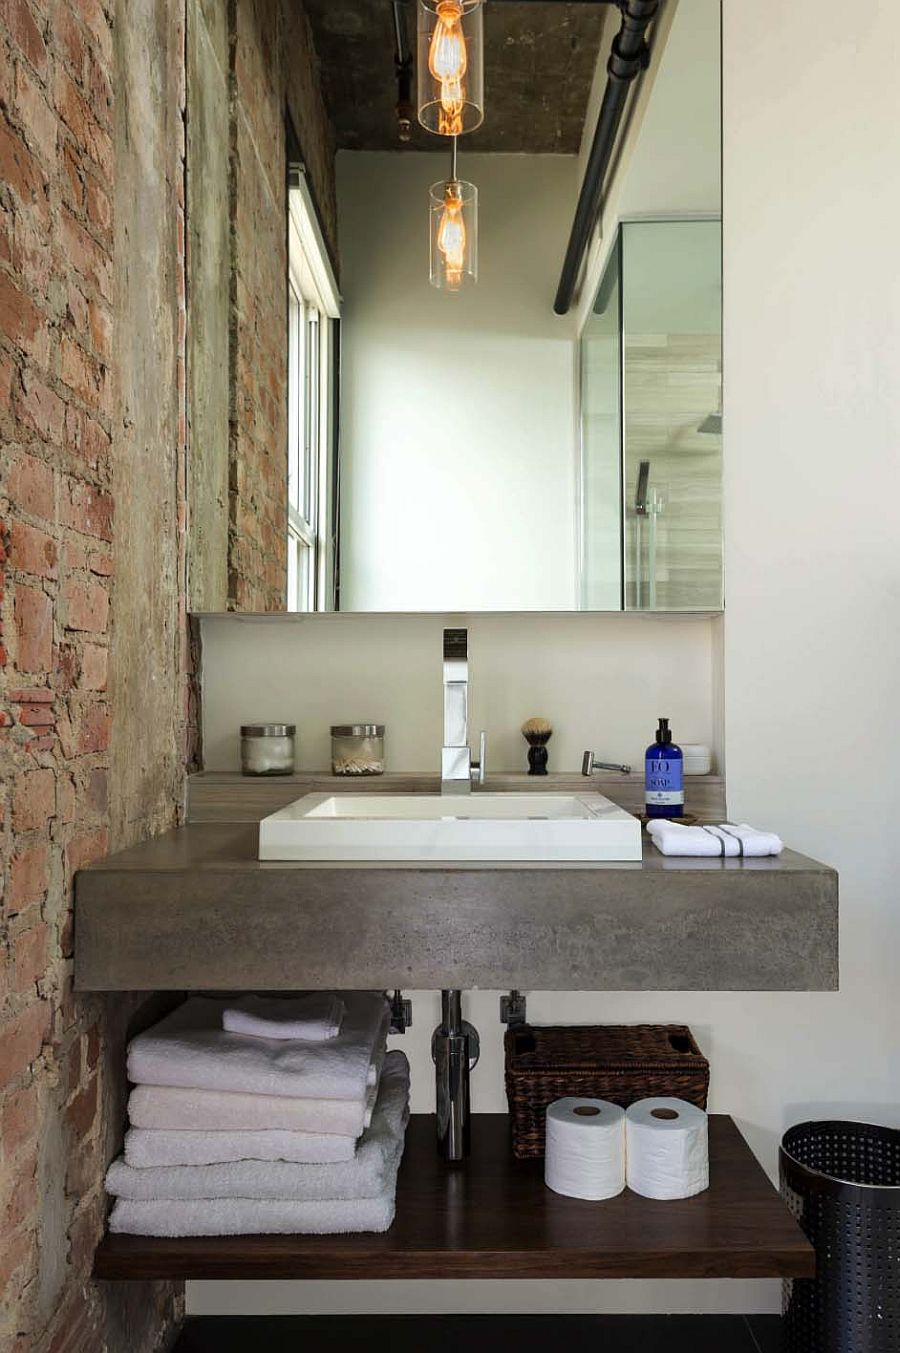 Concrete is combined with brick beautifully inside this modern industrial bathroom